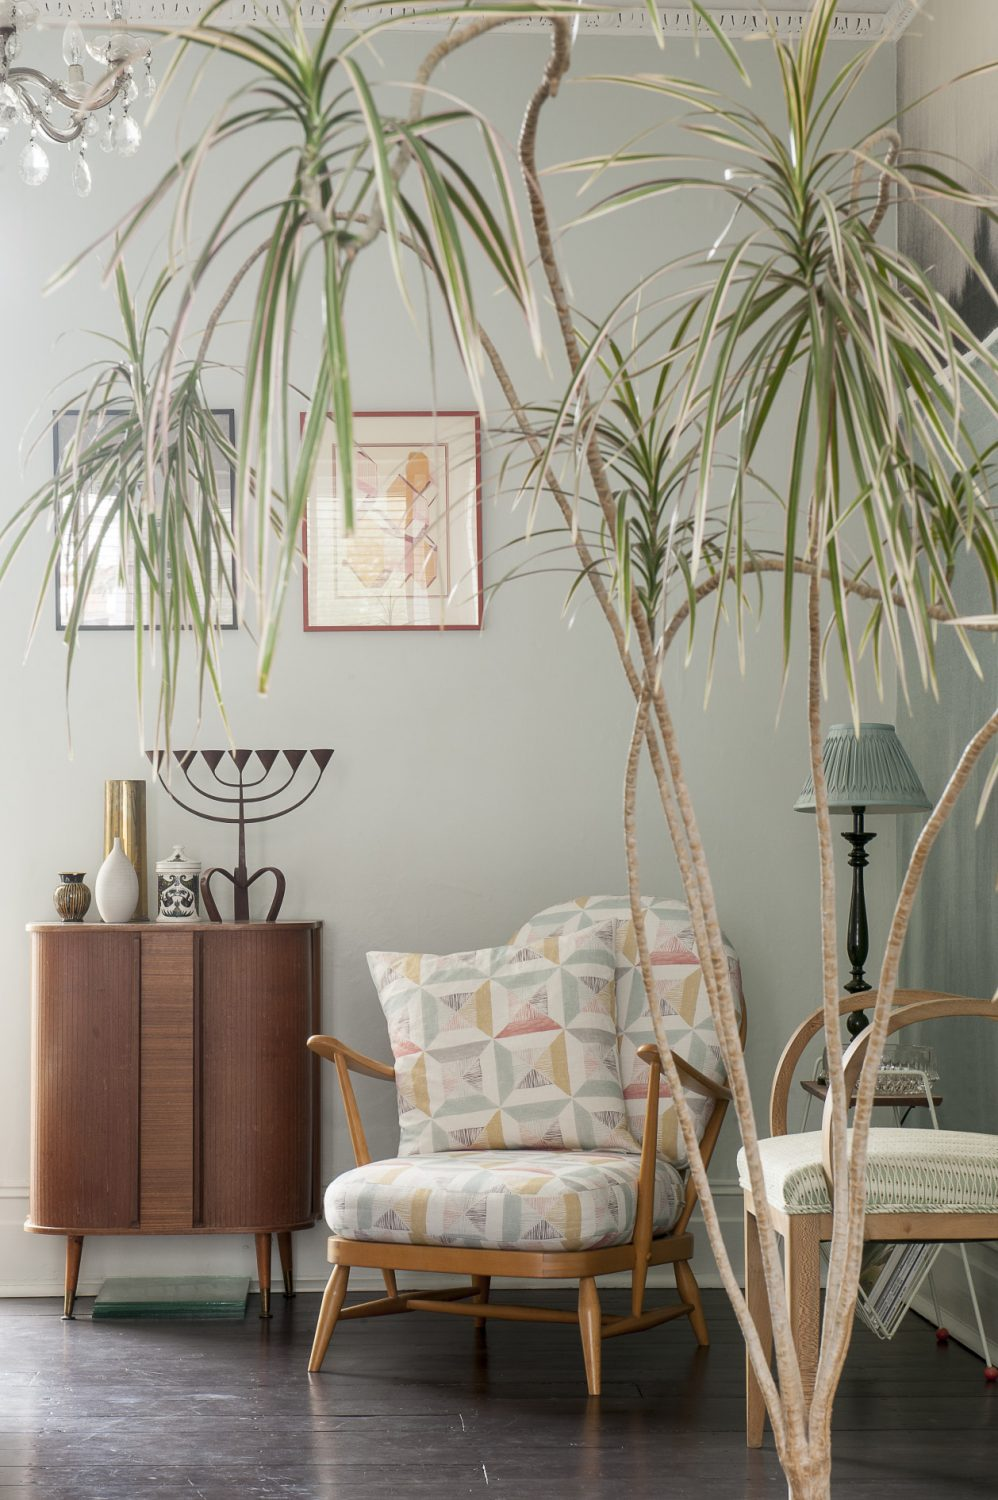 The walls in the dining room are painted in Farrow & Ball Pale Powder. The drinks cabinet was £16 from Courthouse Mews reclamation yard in Hastings Old Town, the menorah was from another Hastings antique shop. The low armchair by Ercol, covered in Louise's fabric